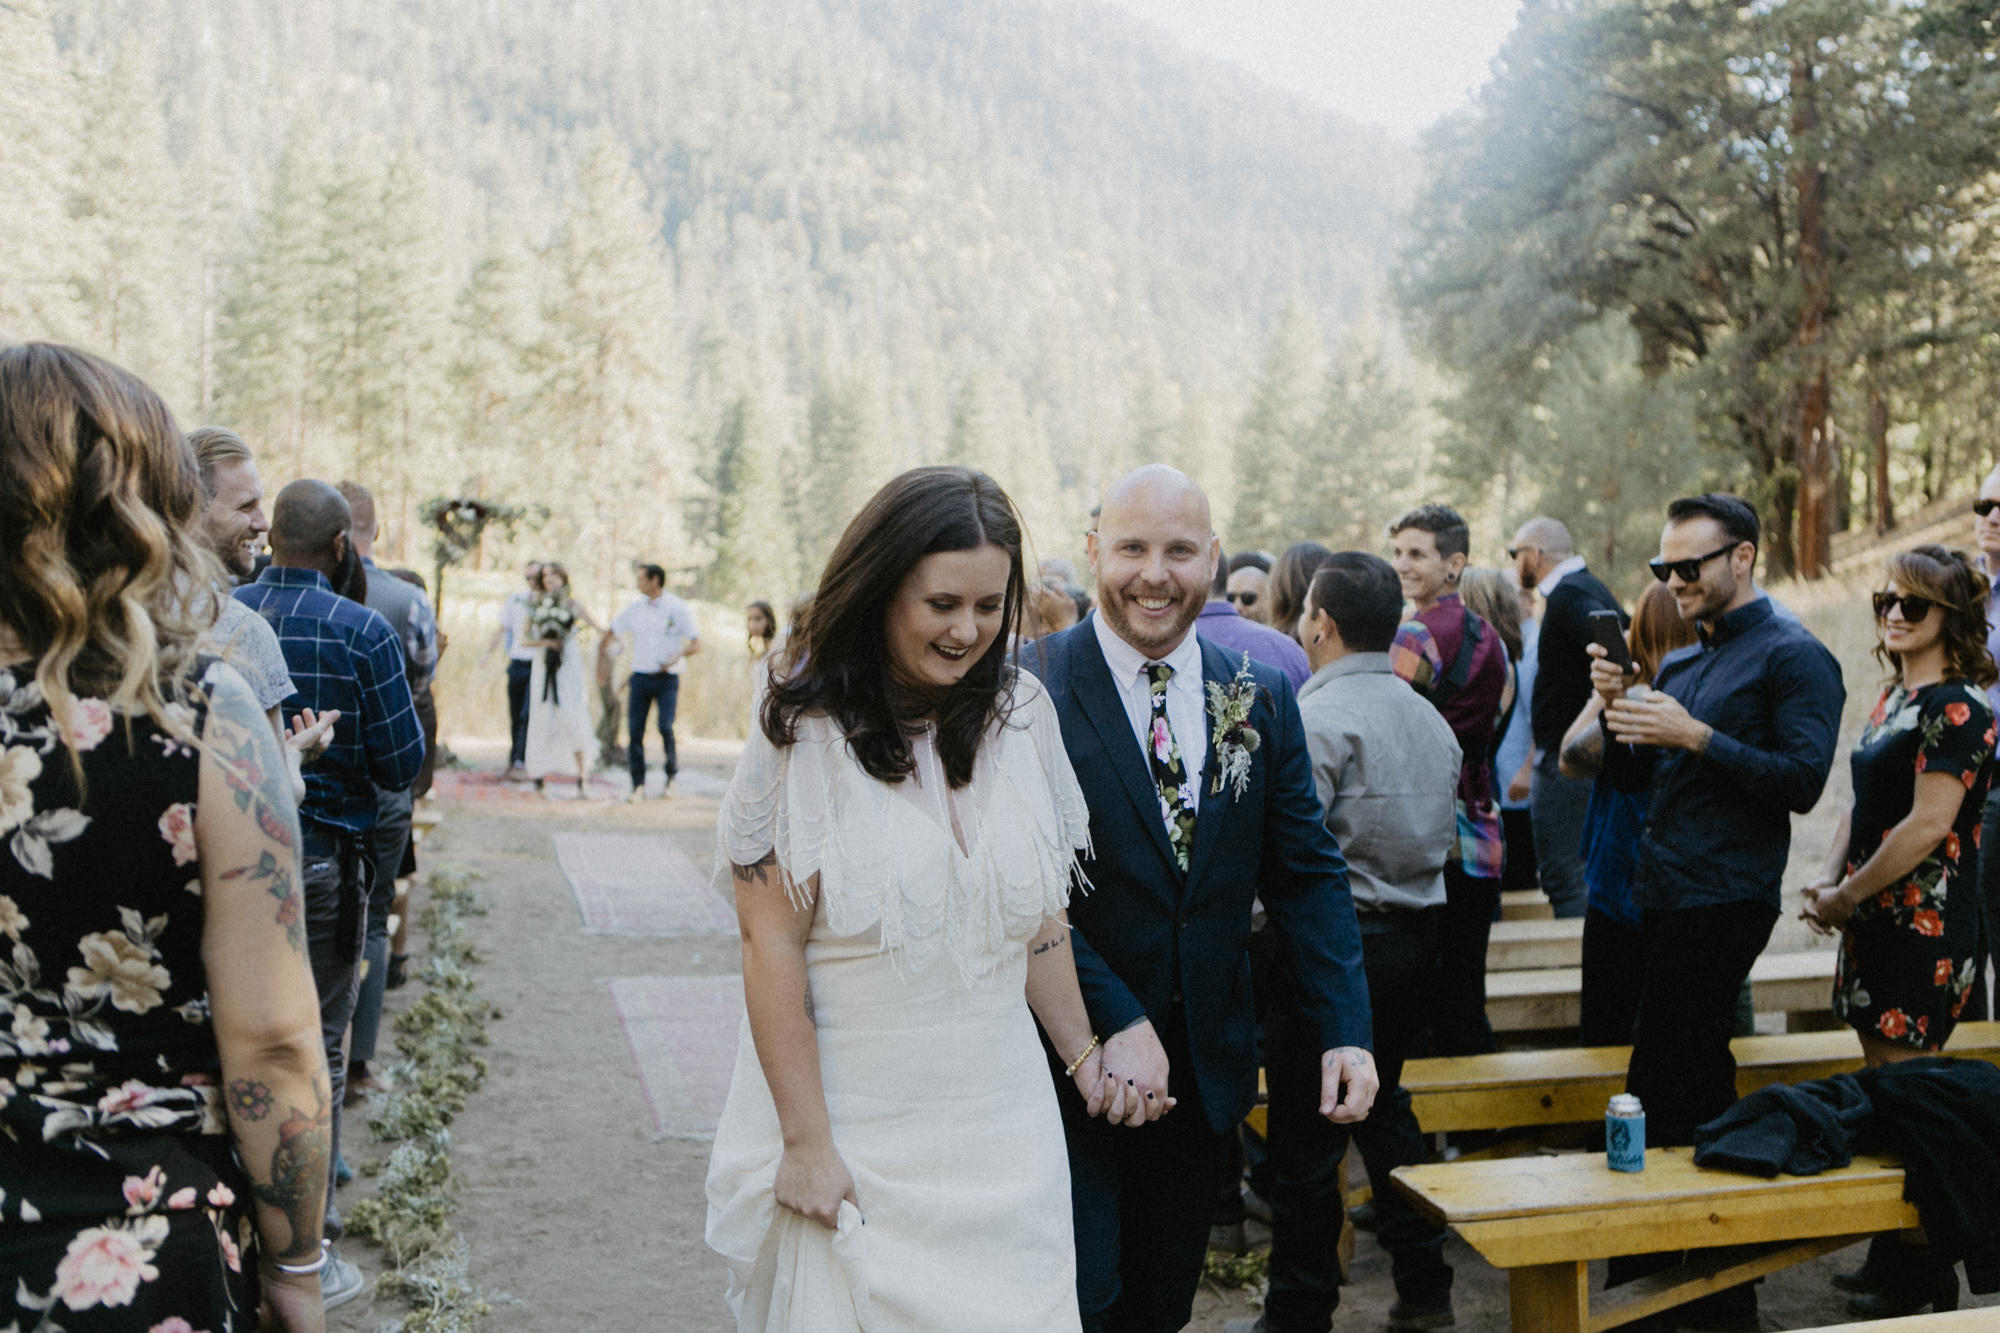 YMCA camp round meadow wedding -82.jpg